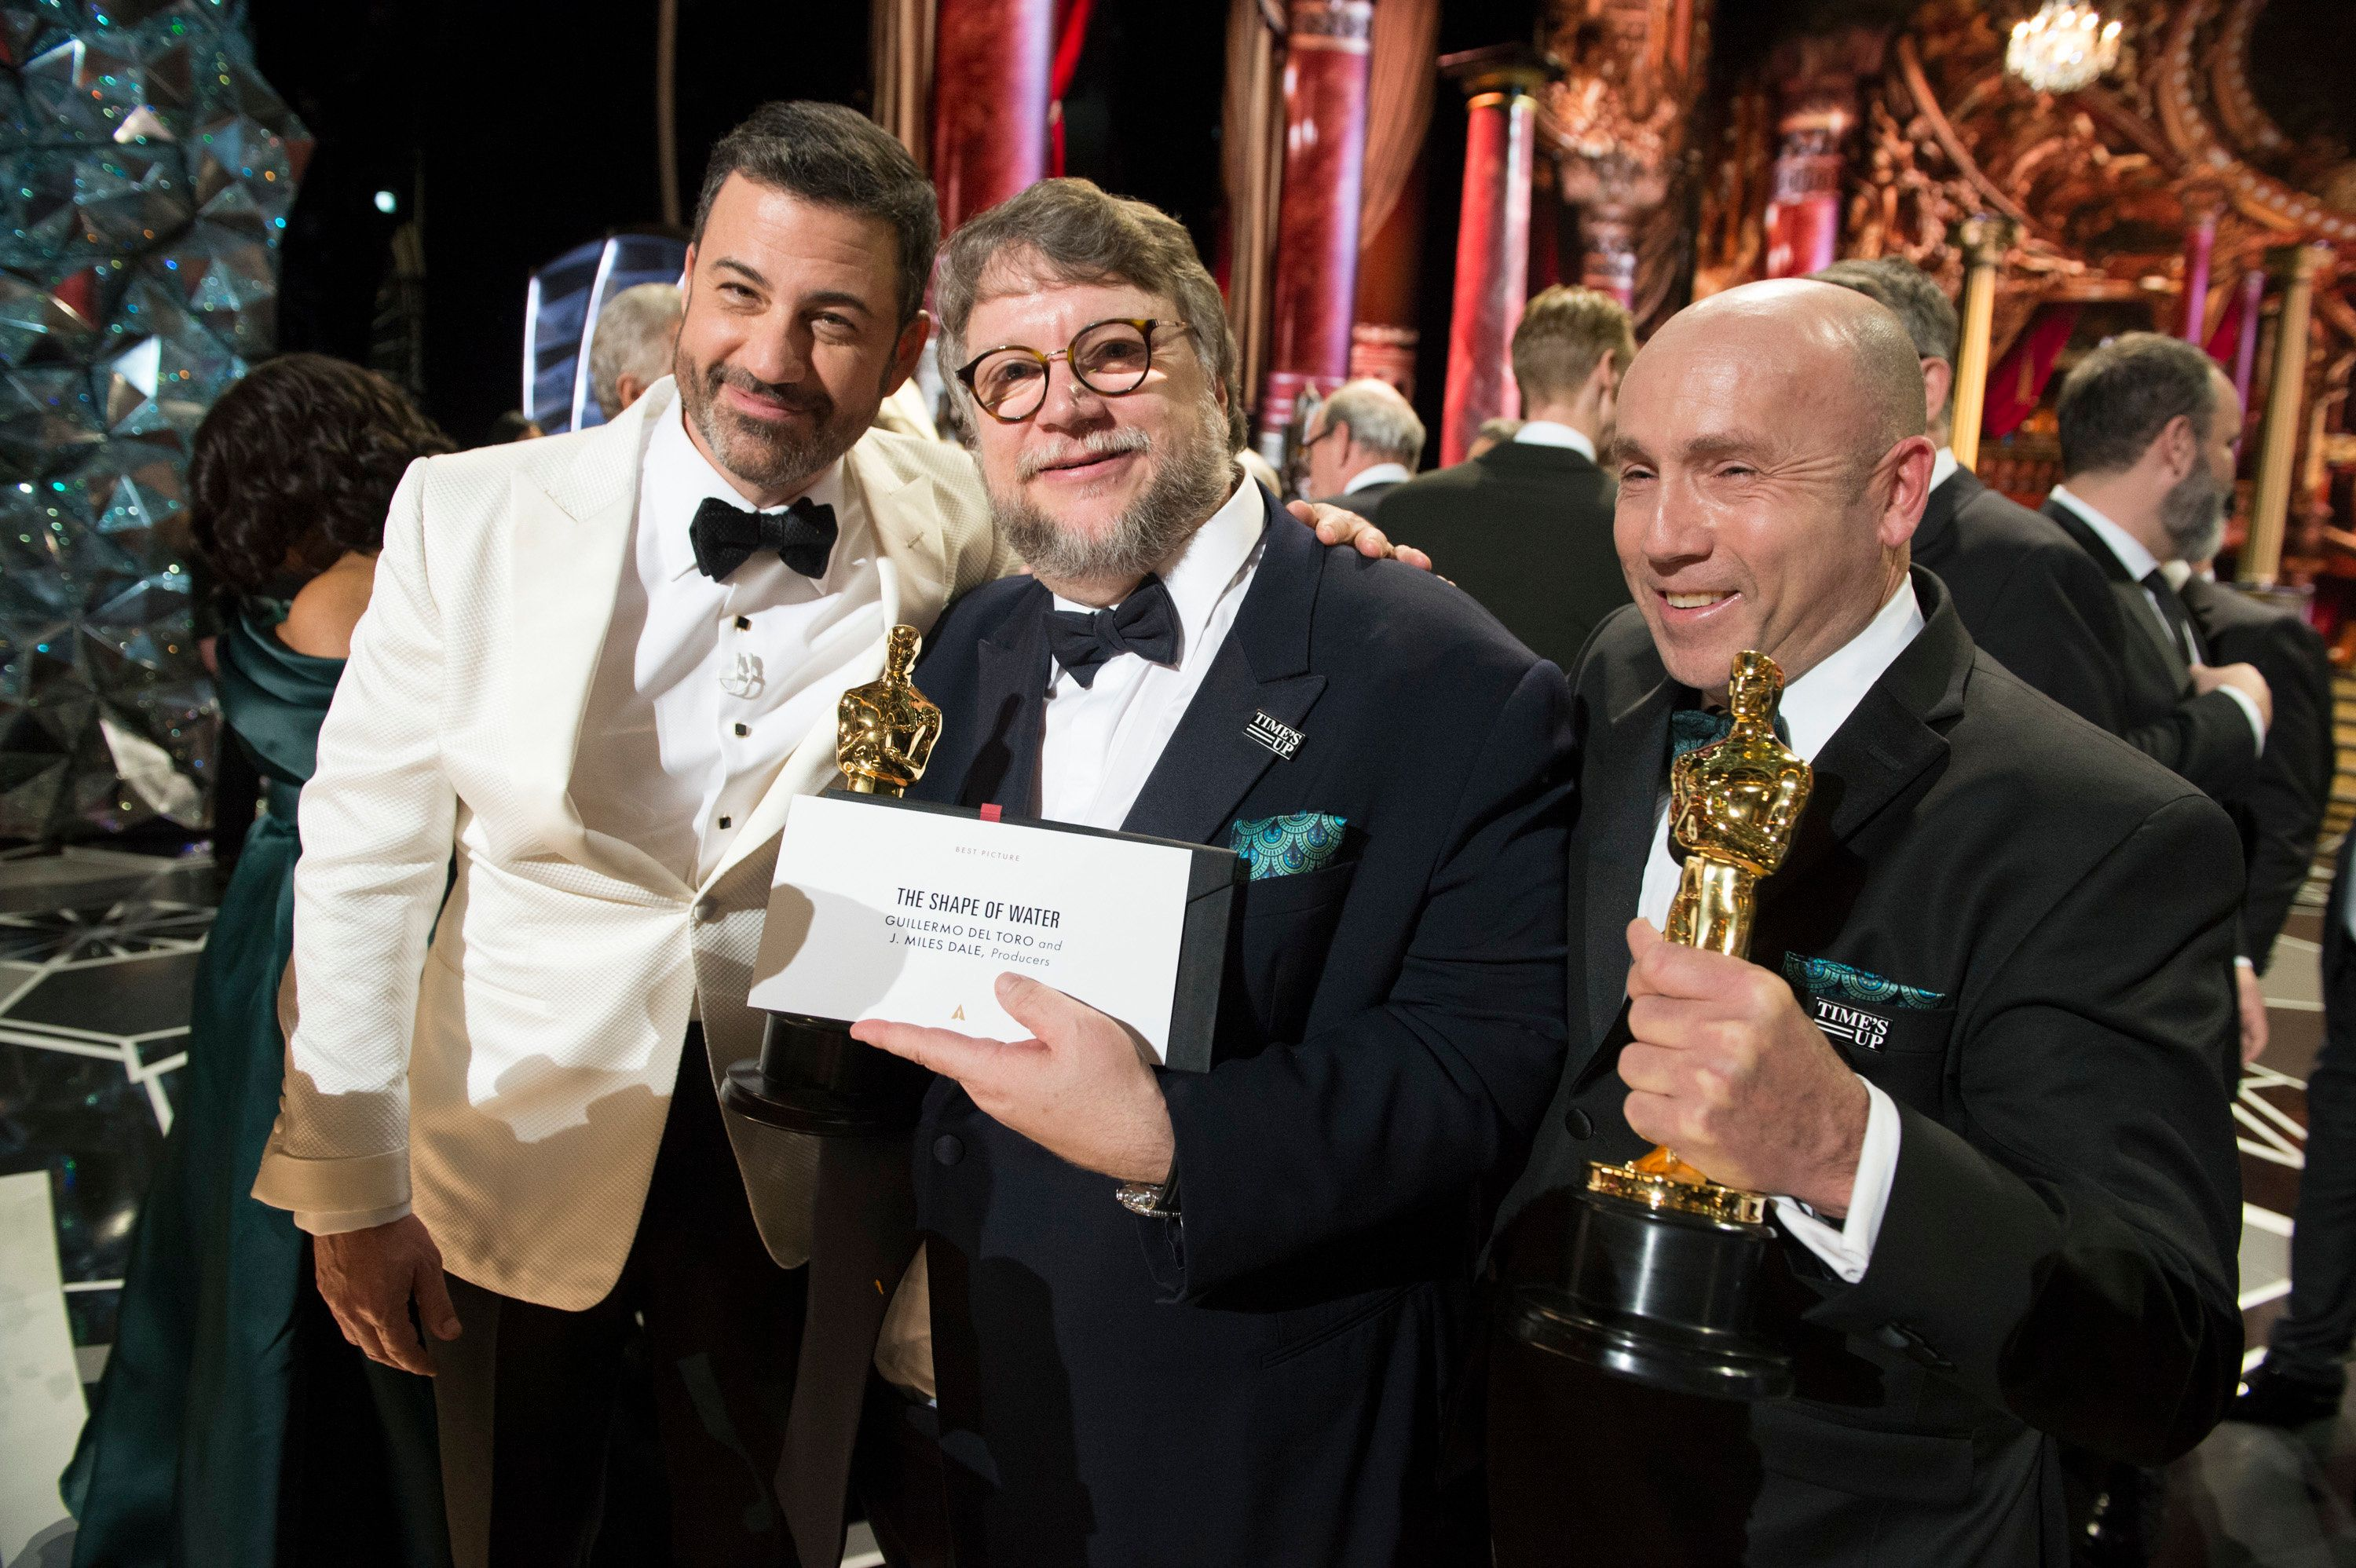 THE OSCARS(r) - The 90th Oscars(r)  broadcasts live on Oscar(r) SUNDAY, MARCH 4, 2018, at the Dolby Theatre® at Hollywood & Highland Center® in Hollywood, on the ABC Television Network. (Eric McCandless via Getty Images) JIMMY KIMMEL, GUILLERMO DEL TORO, J. MILES DALE